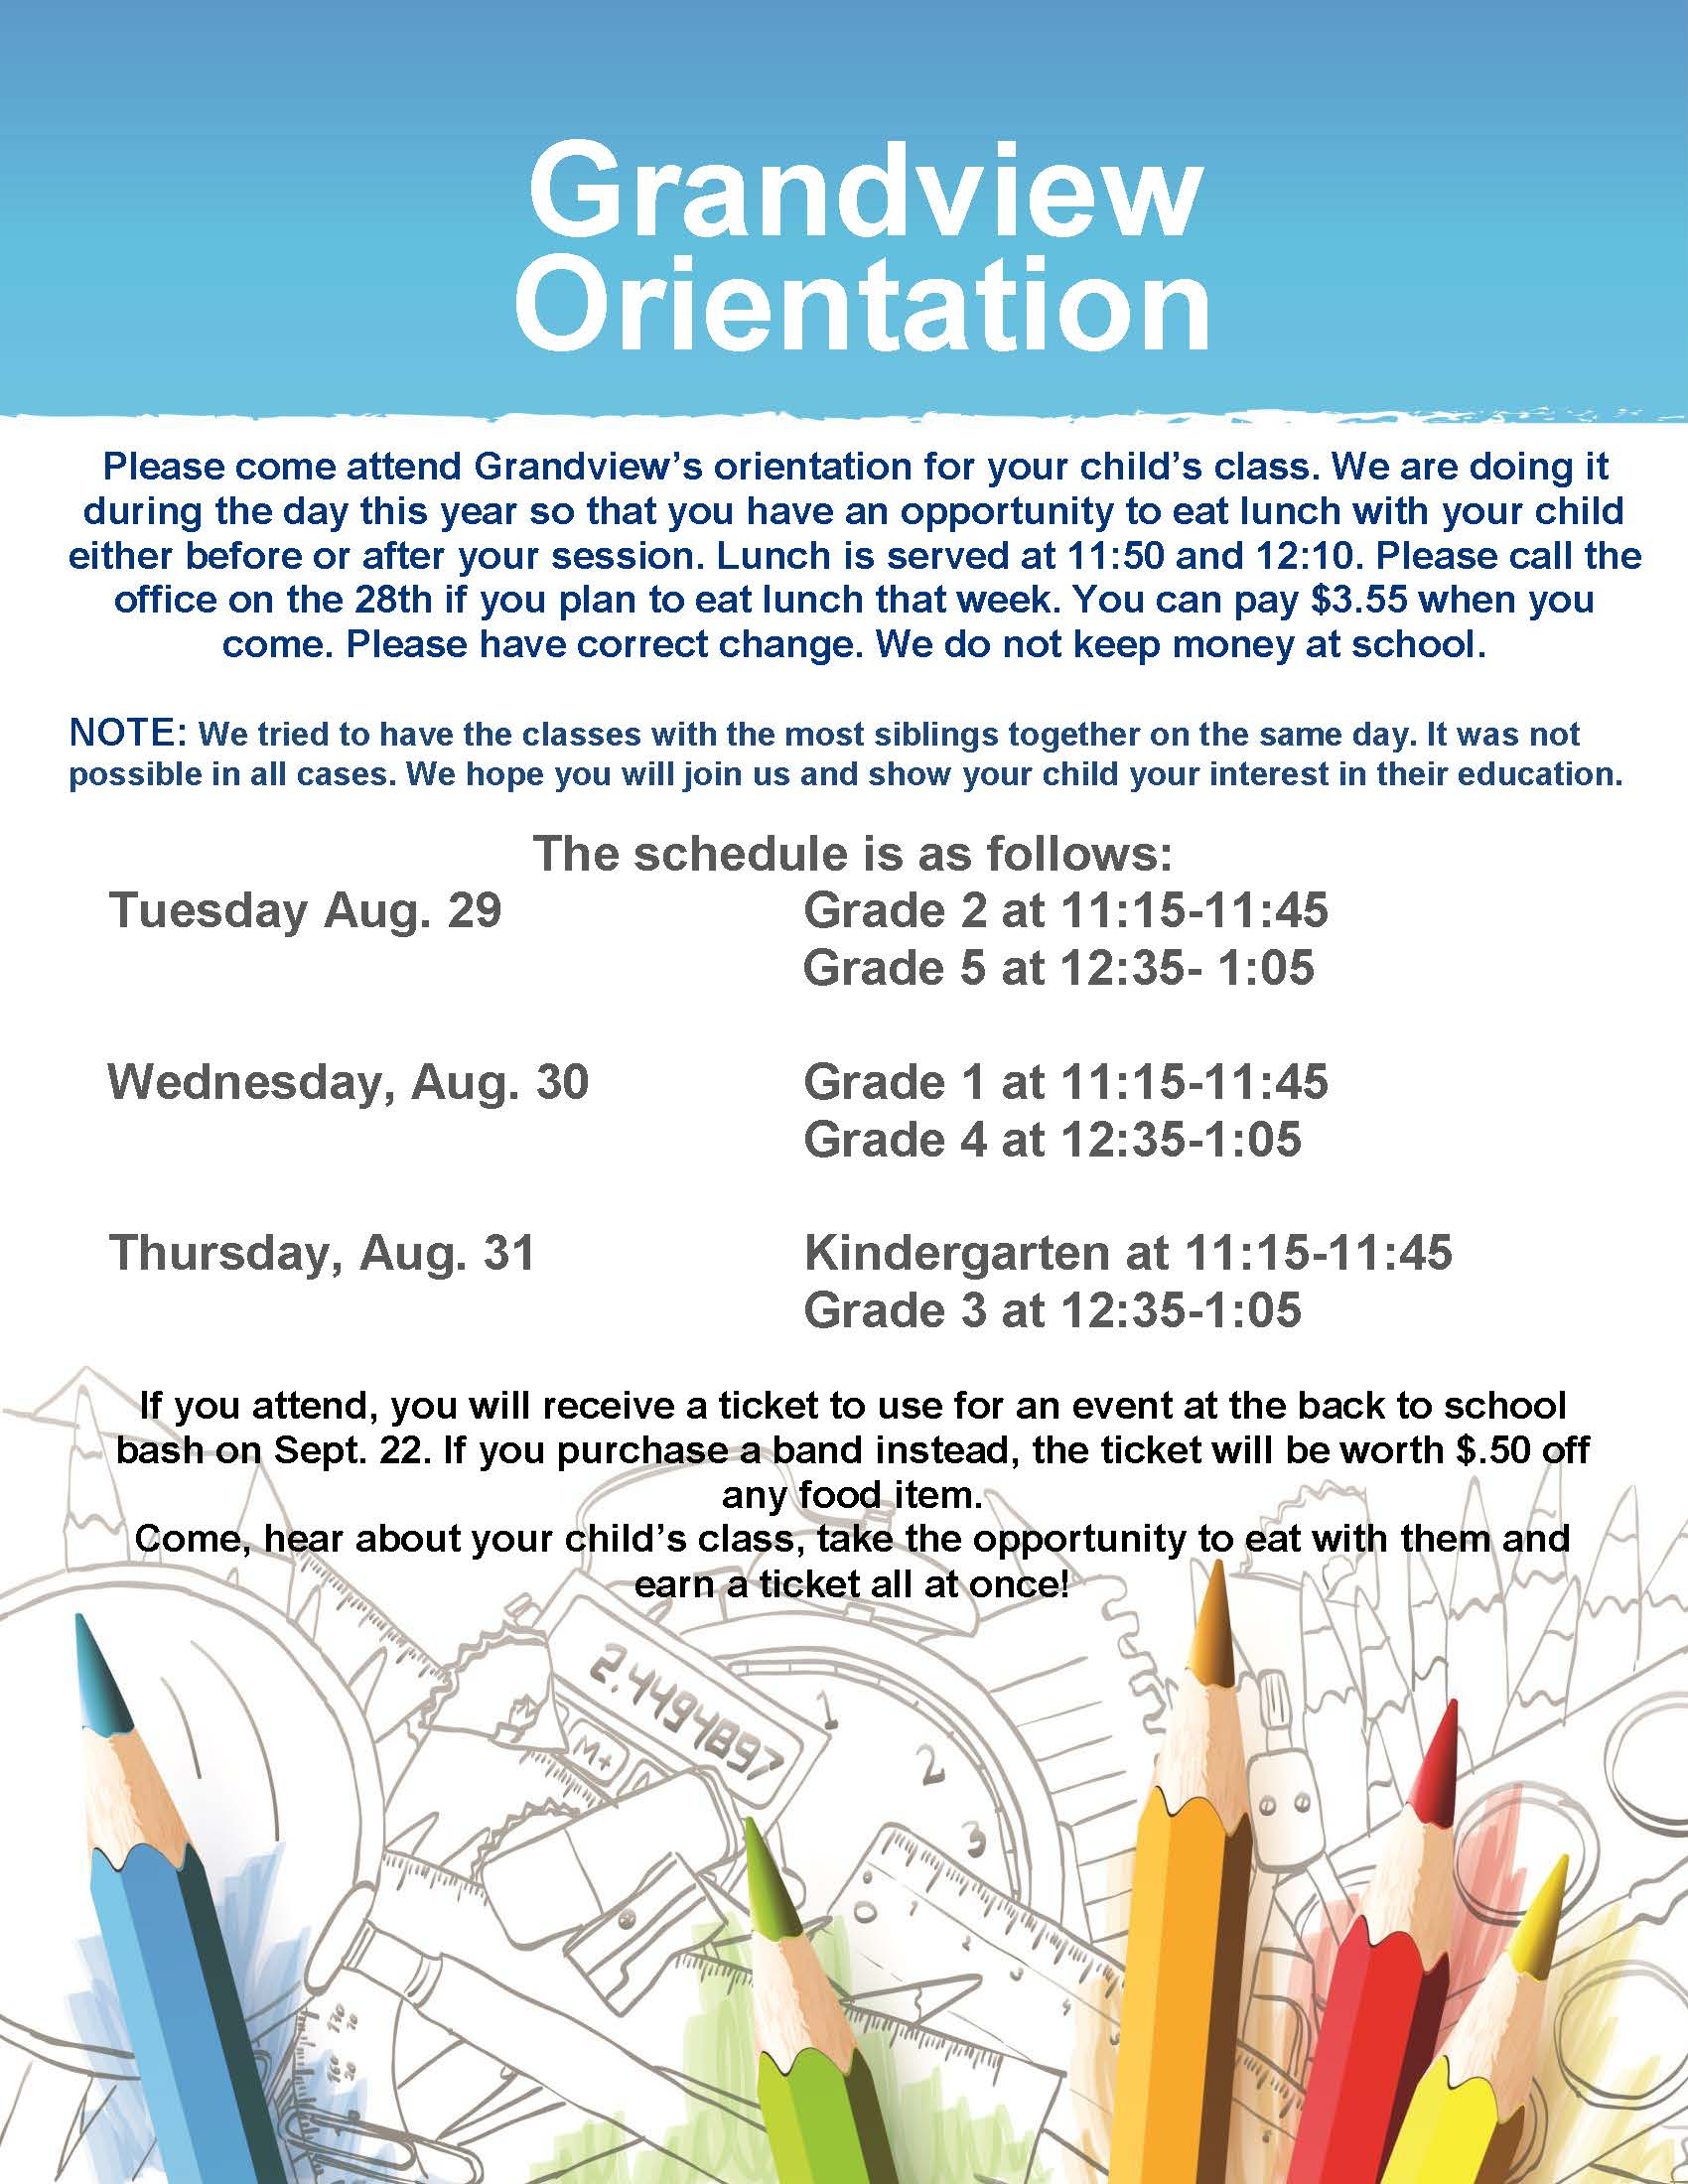 Grandview Parent Orientation Flyer